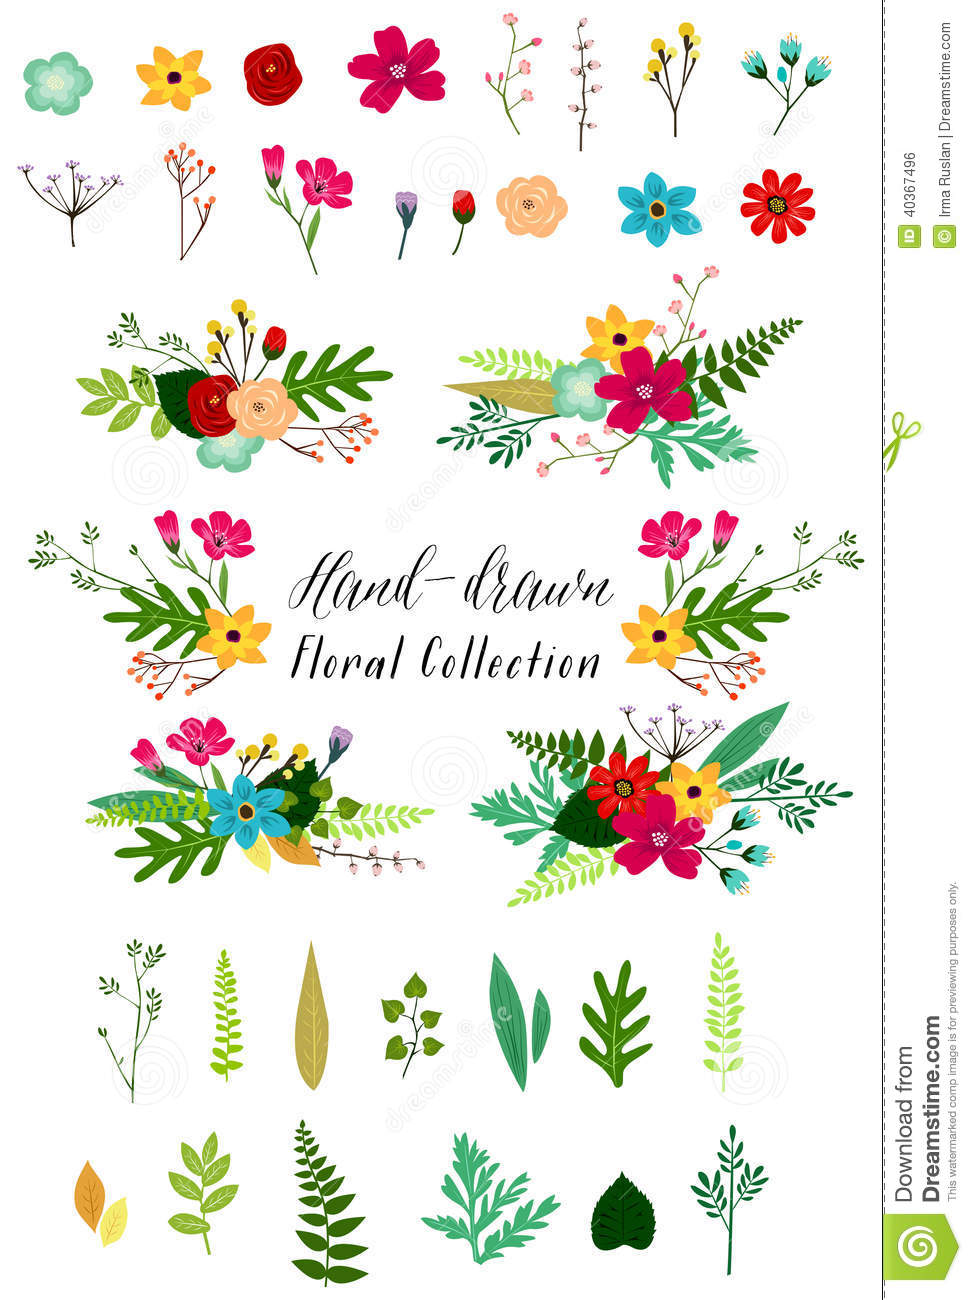 Clipart flowers and leaves clipart royalty free download Vector Vintage Flowers And Leaves Clip Art Stock Vector - Image ... clipart royalty free download